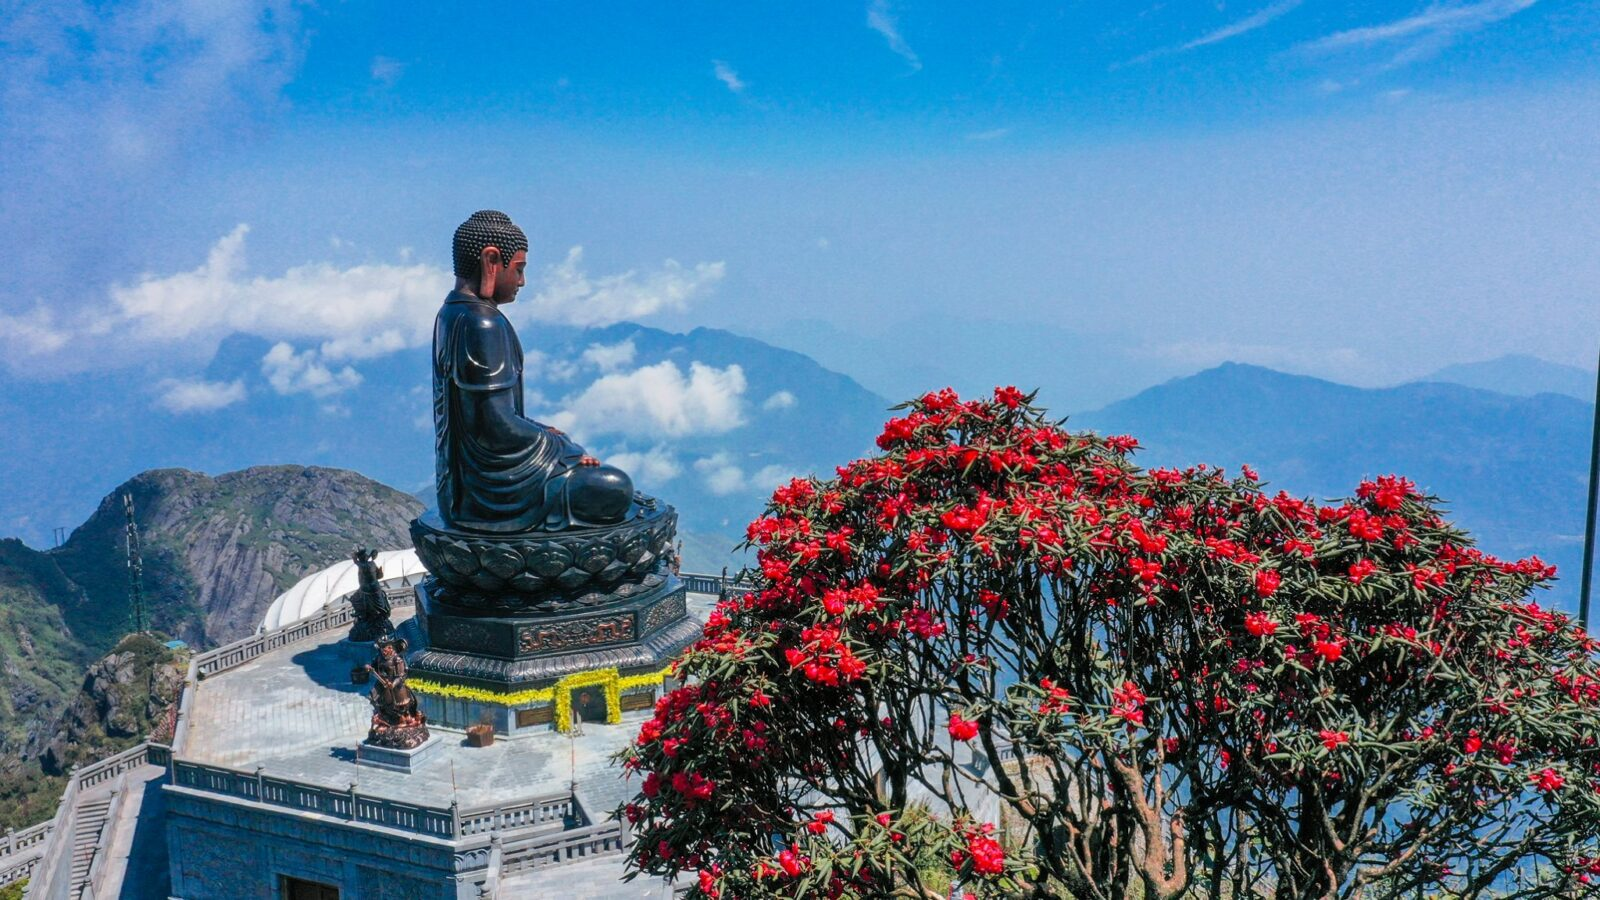 Image of a buddha statue at the top of Sun World Fansipan Legend in Sapa, Vietnam